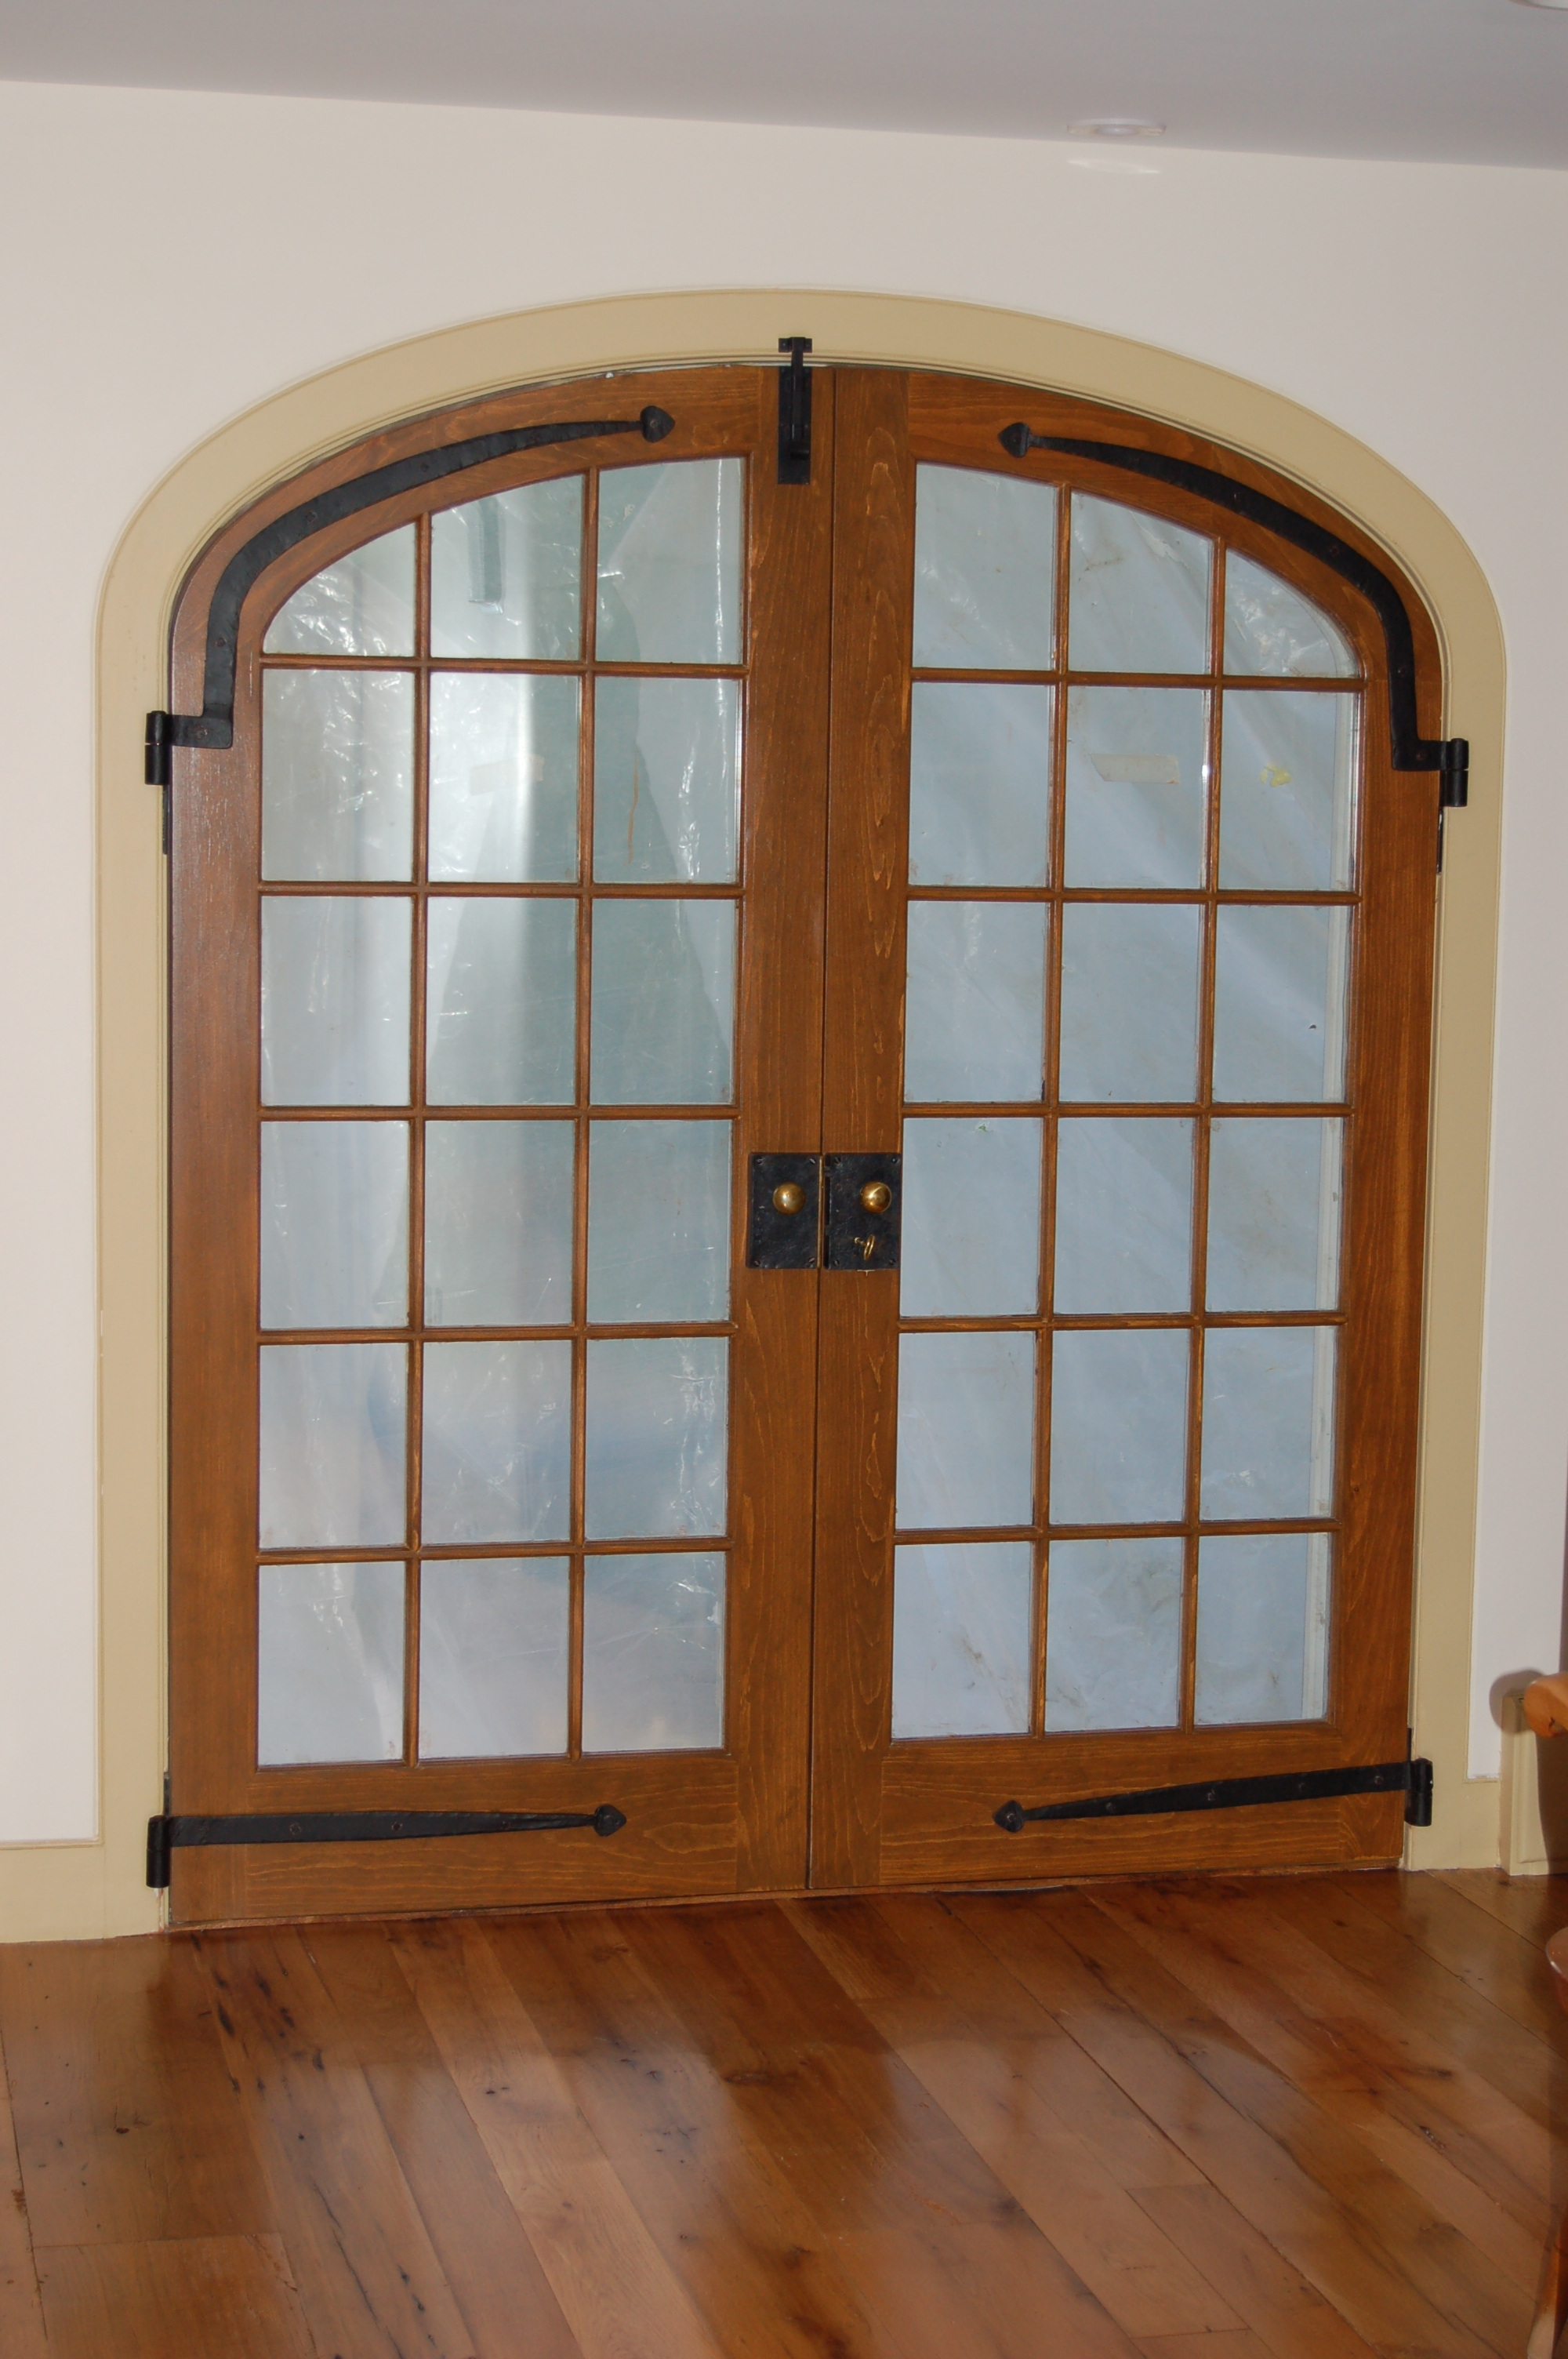 Interior french doors interior french doors - Interior French Doors Interior French Doors 29